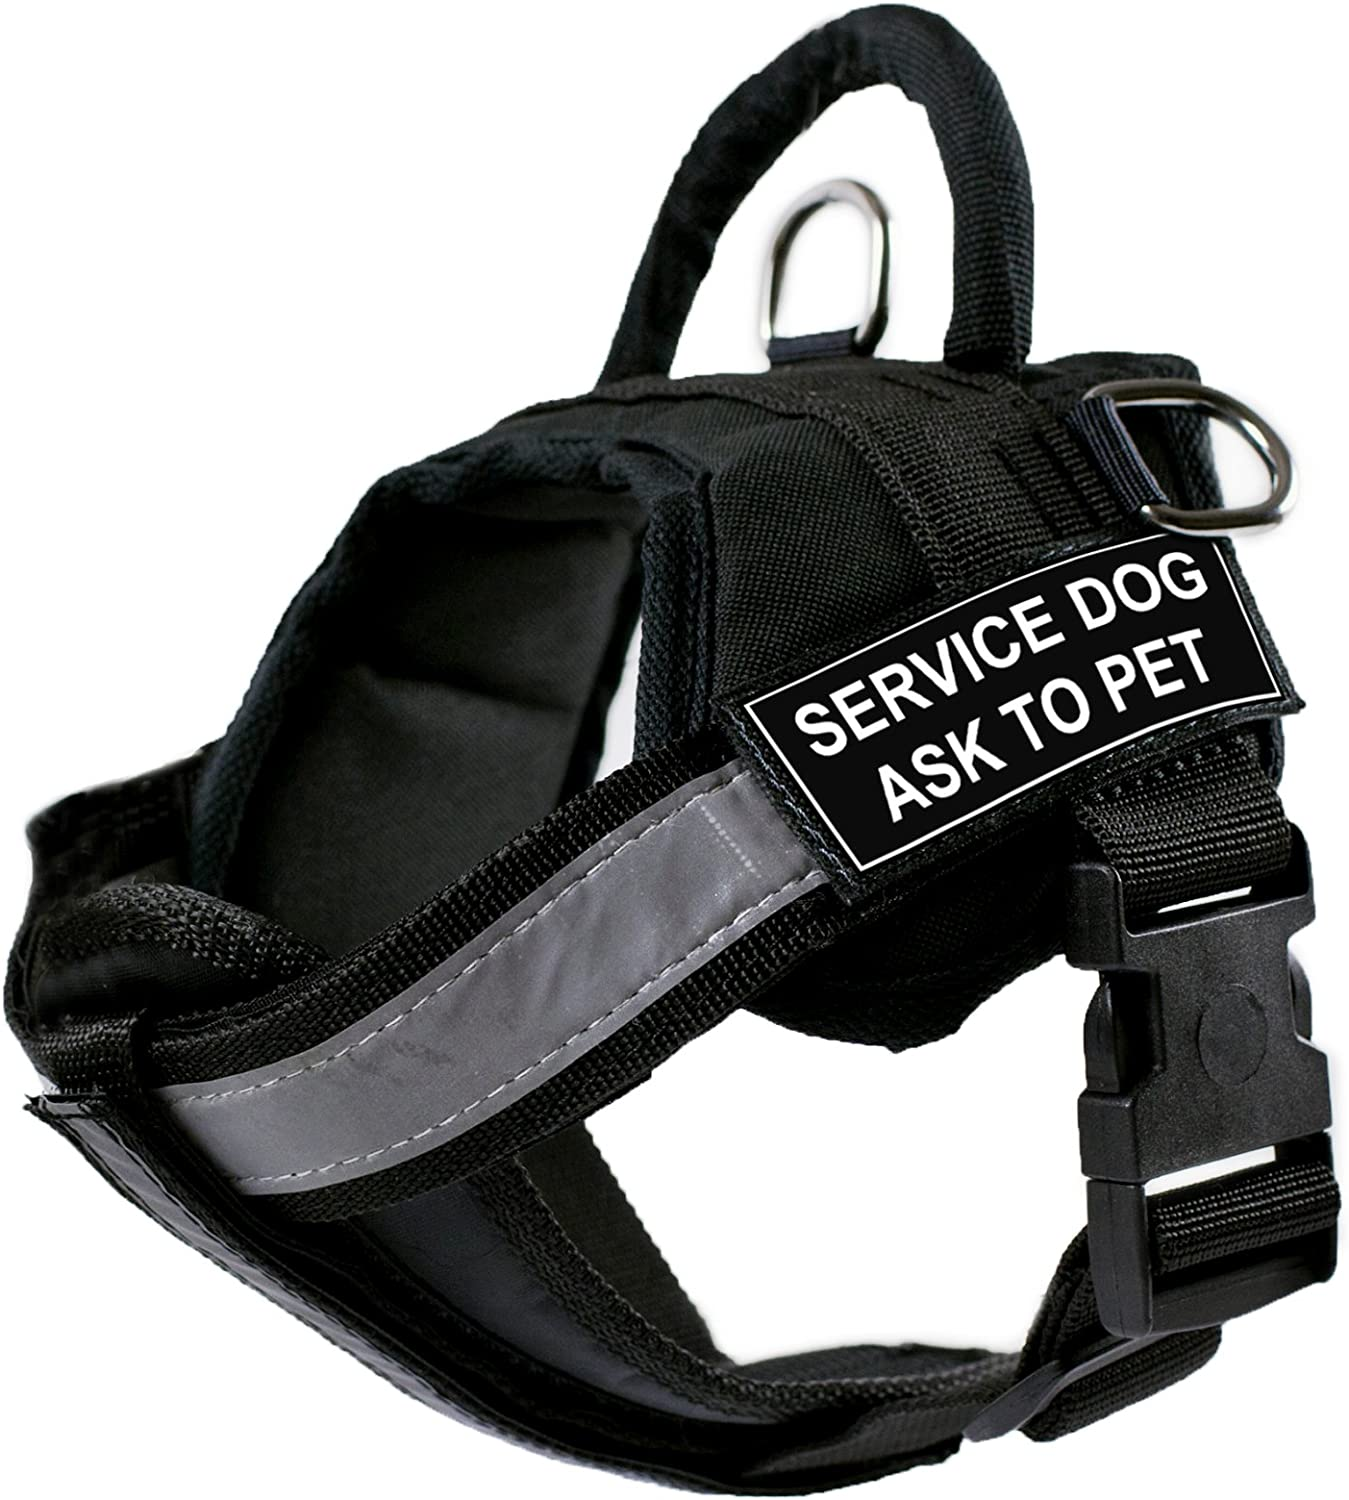 DT Works Harness with Padded Reflective Chest Straps, Service Dog Ask To Pet, Black, XSmall  Fits Girth Size  21Inch to 26Inch